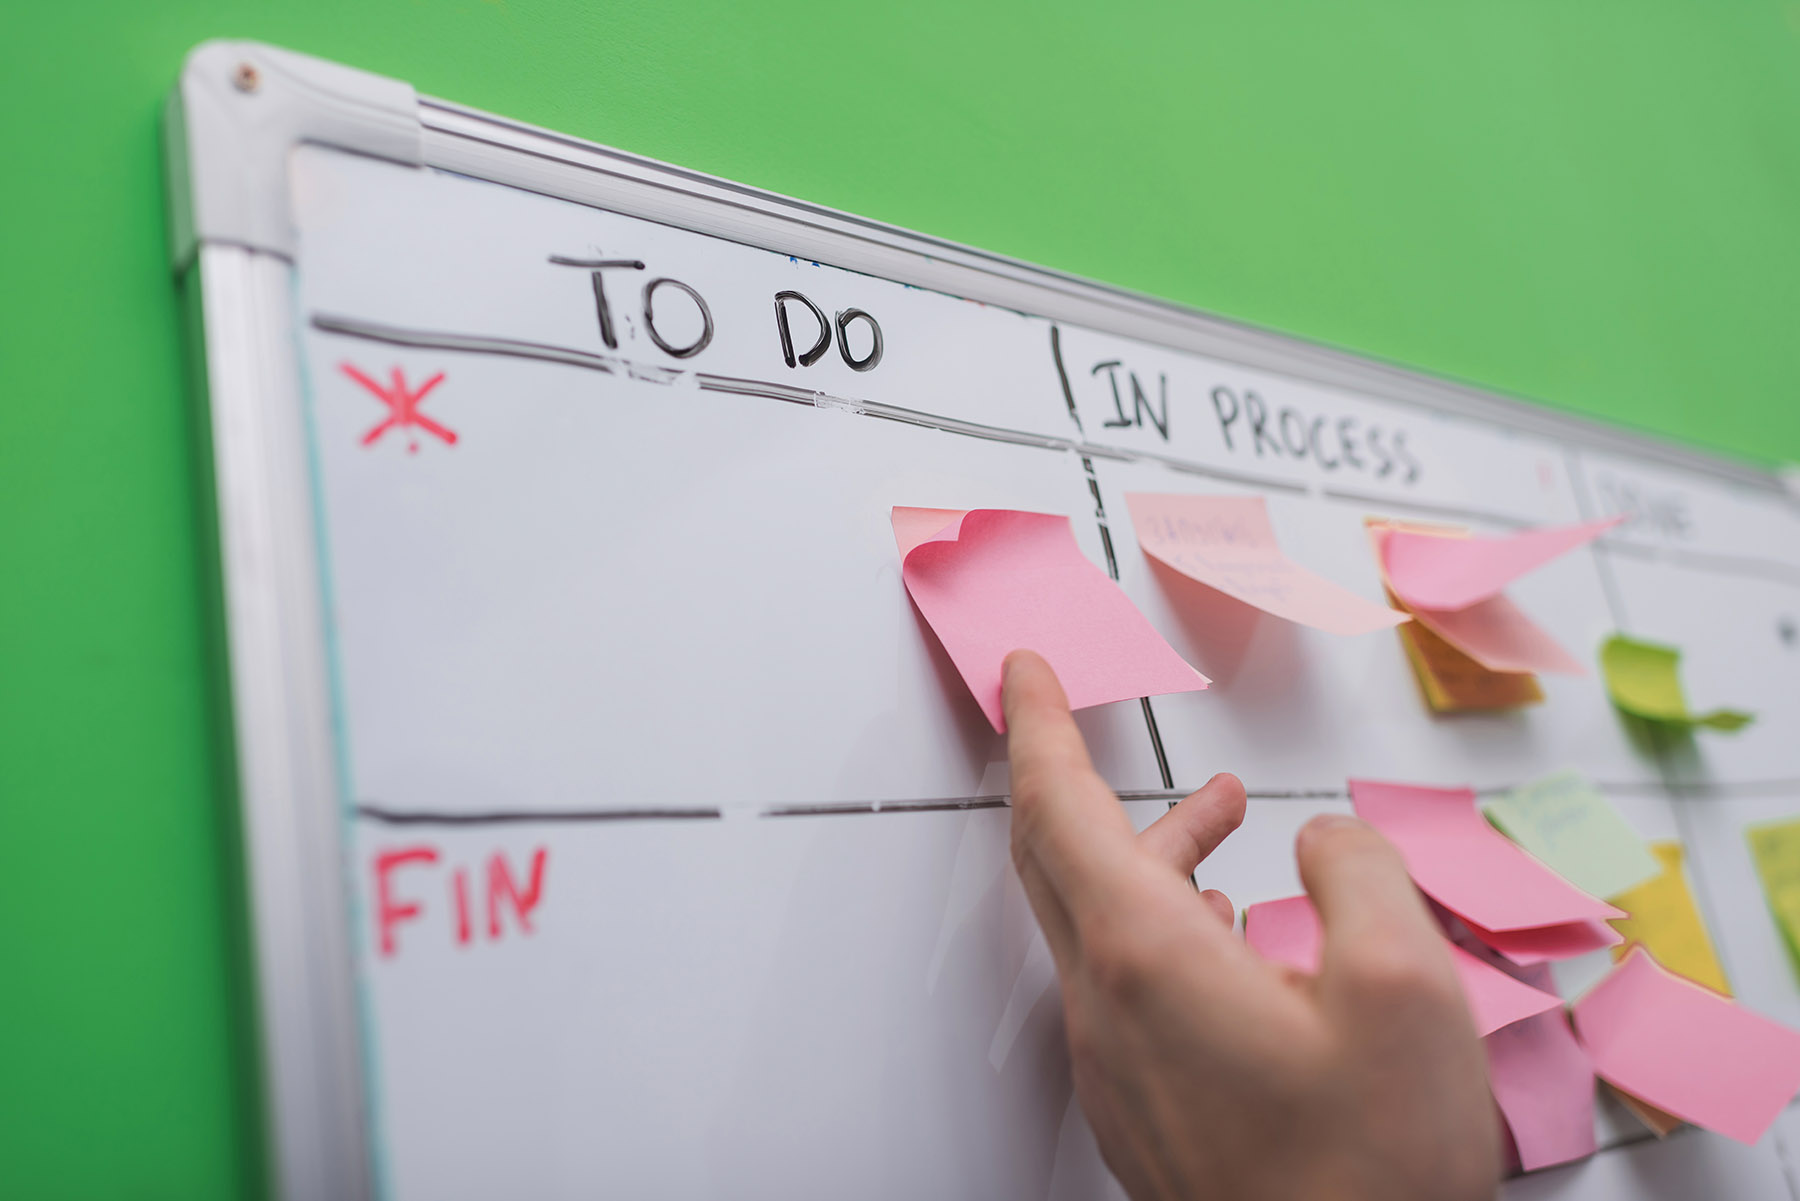 To dos in a project planning